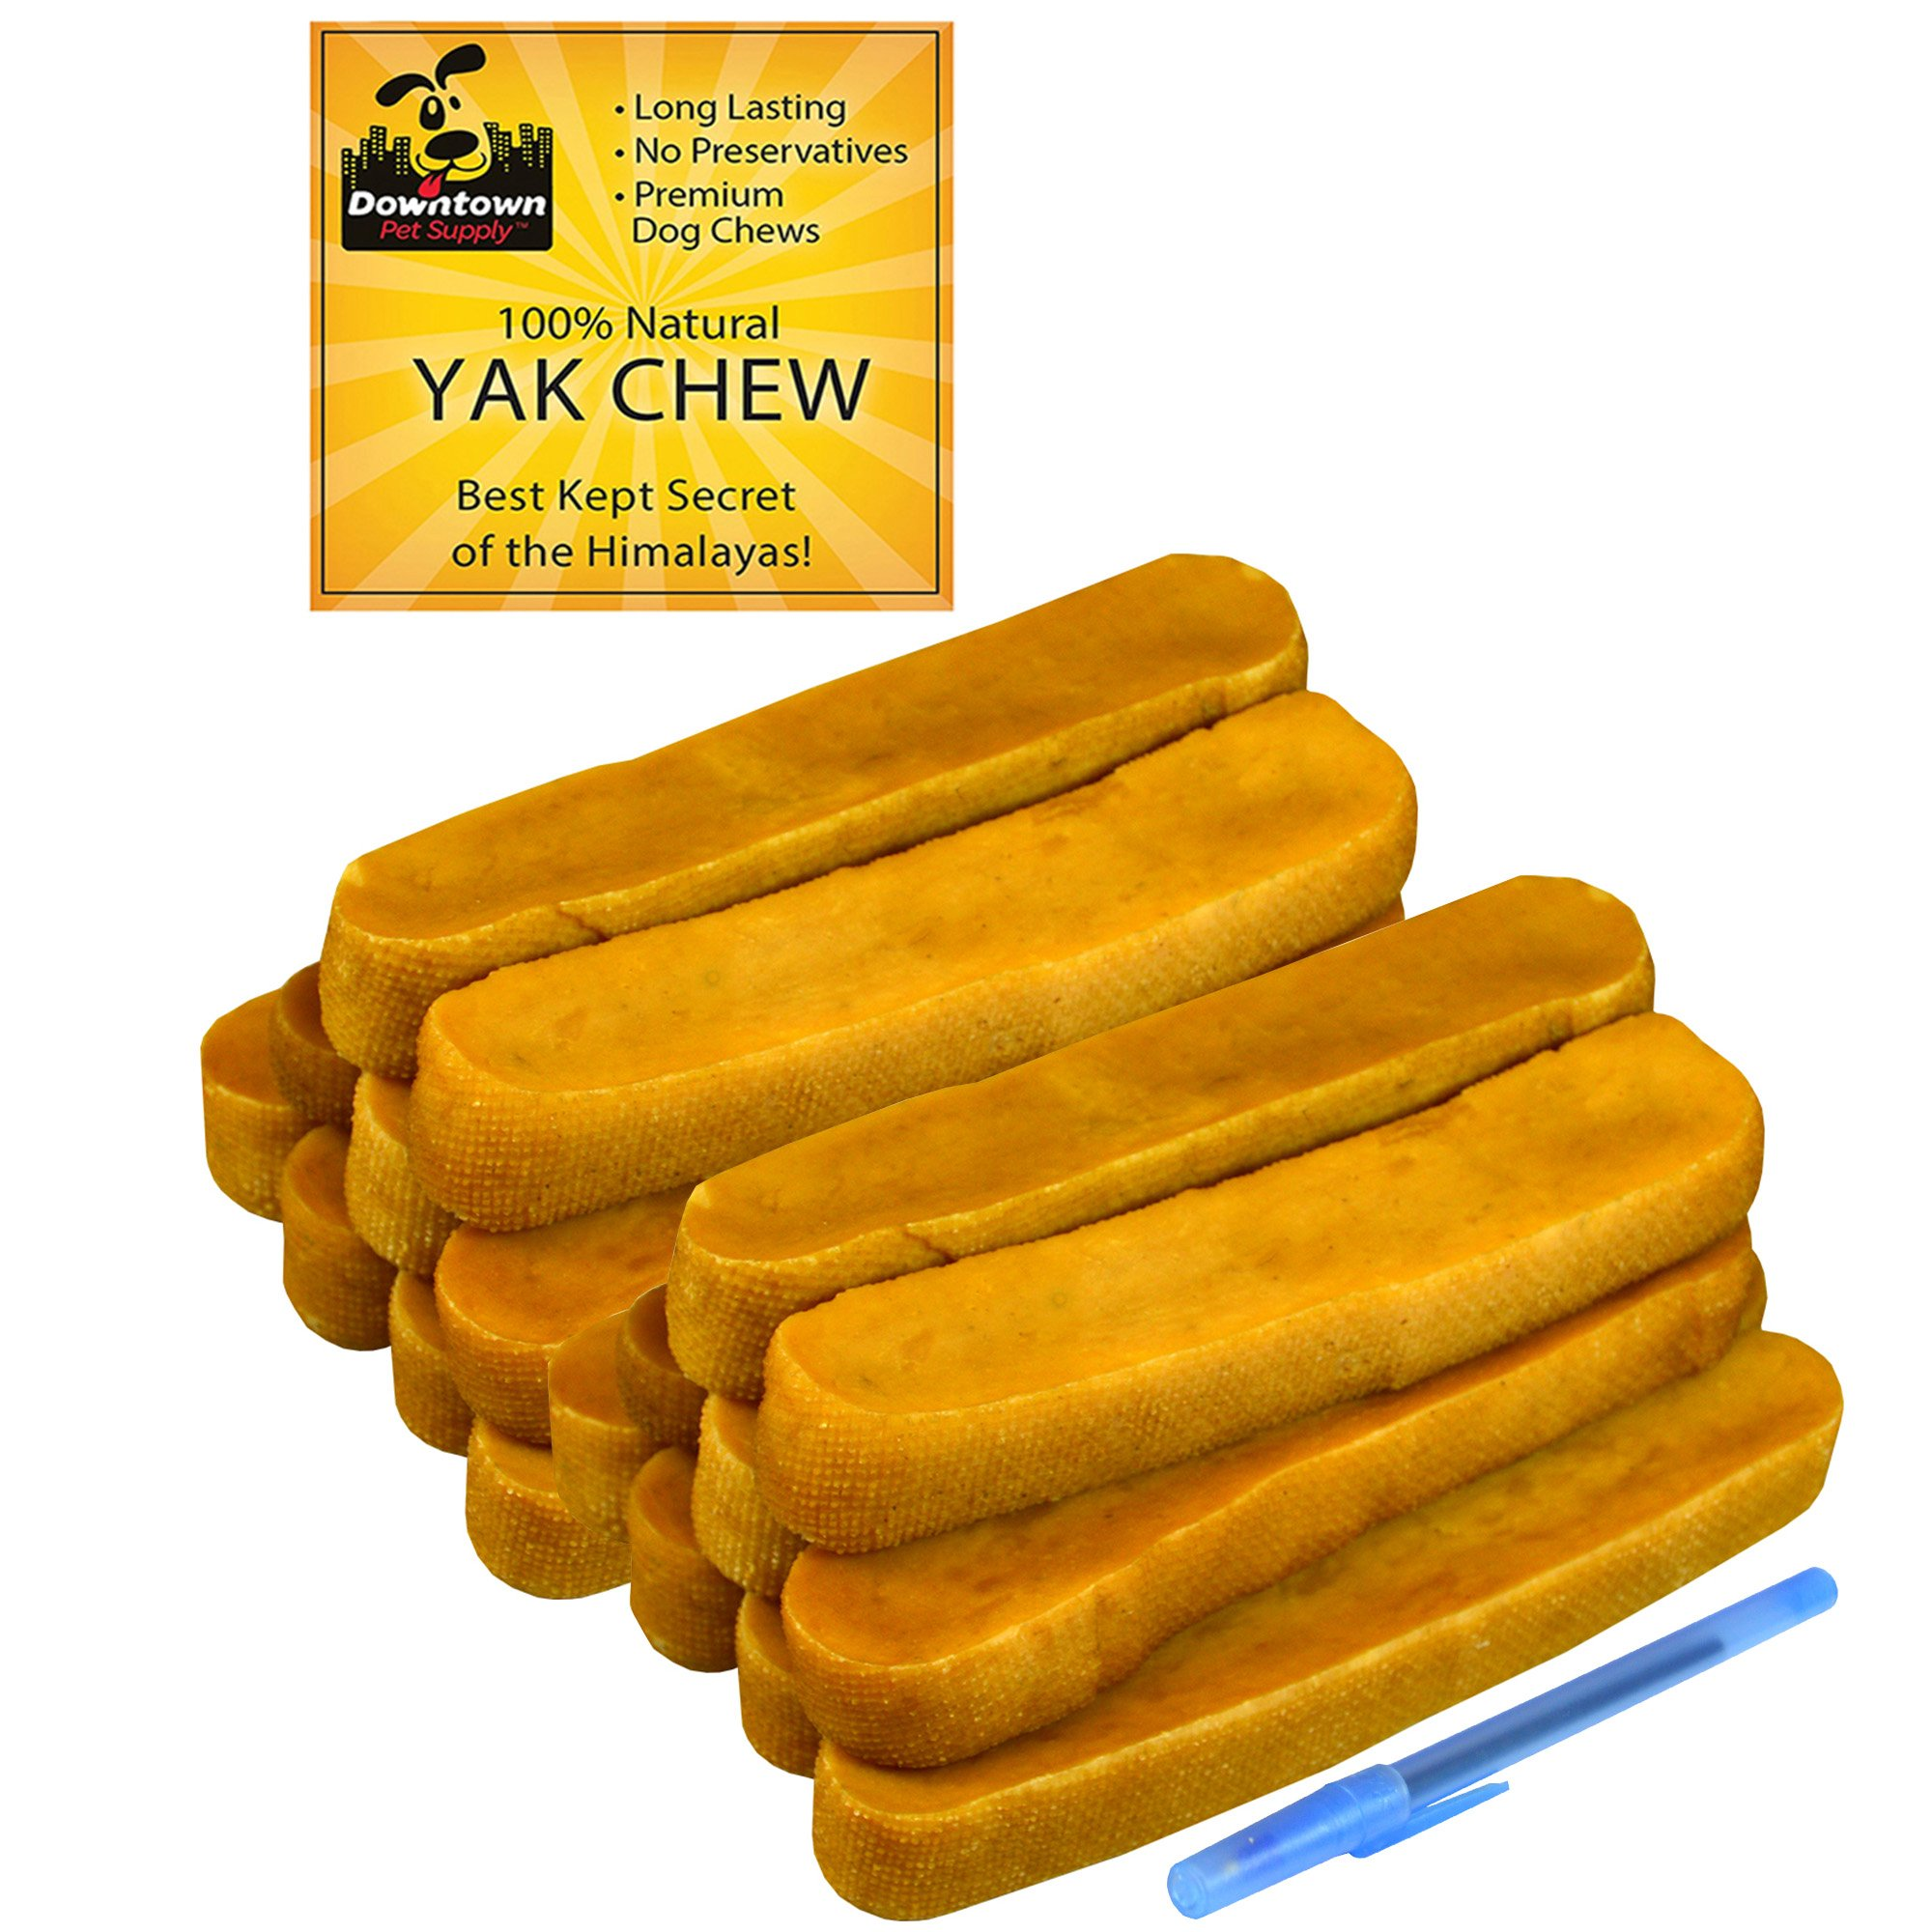 Himalayan Yak Dog Chew, 100% Natural Dog Chews for Small, Medium, and Large Dogs: Mixed Packs, Variety of sizes, by Downtown Pet Supply (10 lb)